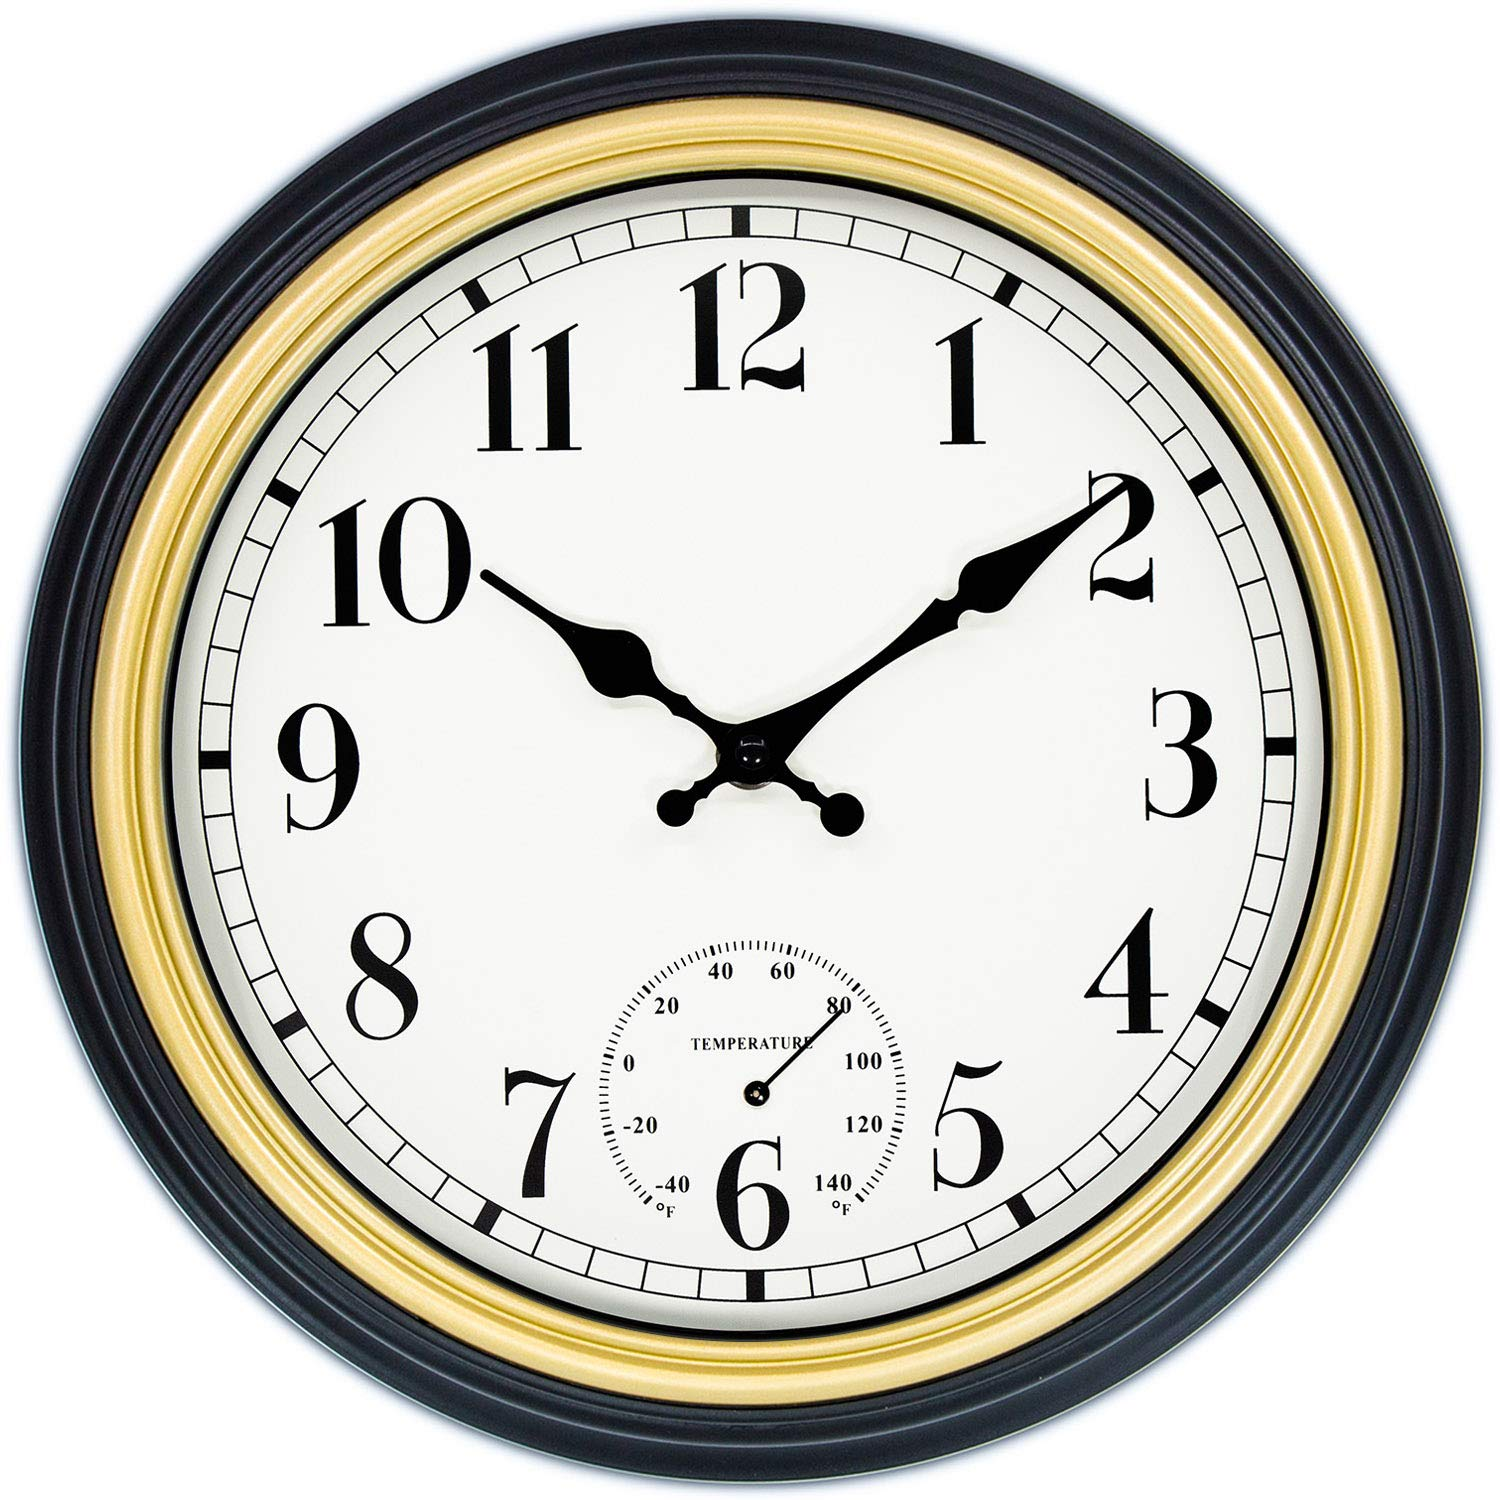 45Min 12 Inch Retro Wall Clock with Thermometer Silver Silent Non Ticking Round Home Decor Wall Clock with Arabic Numerals